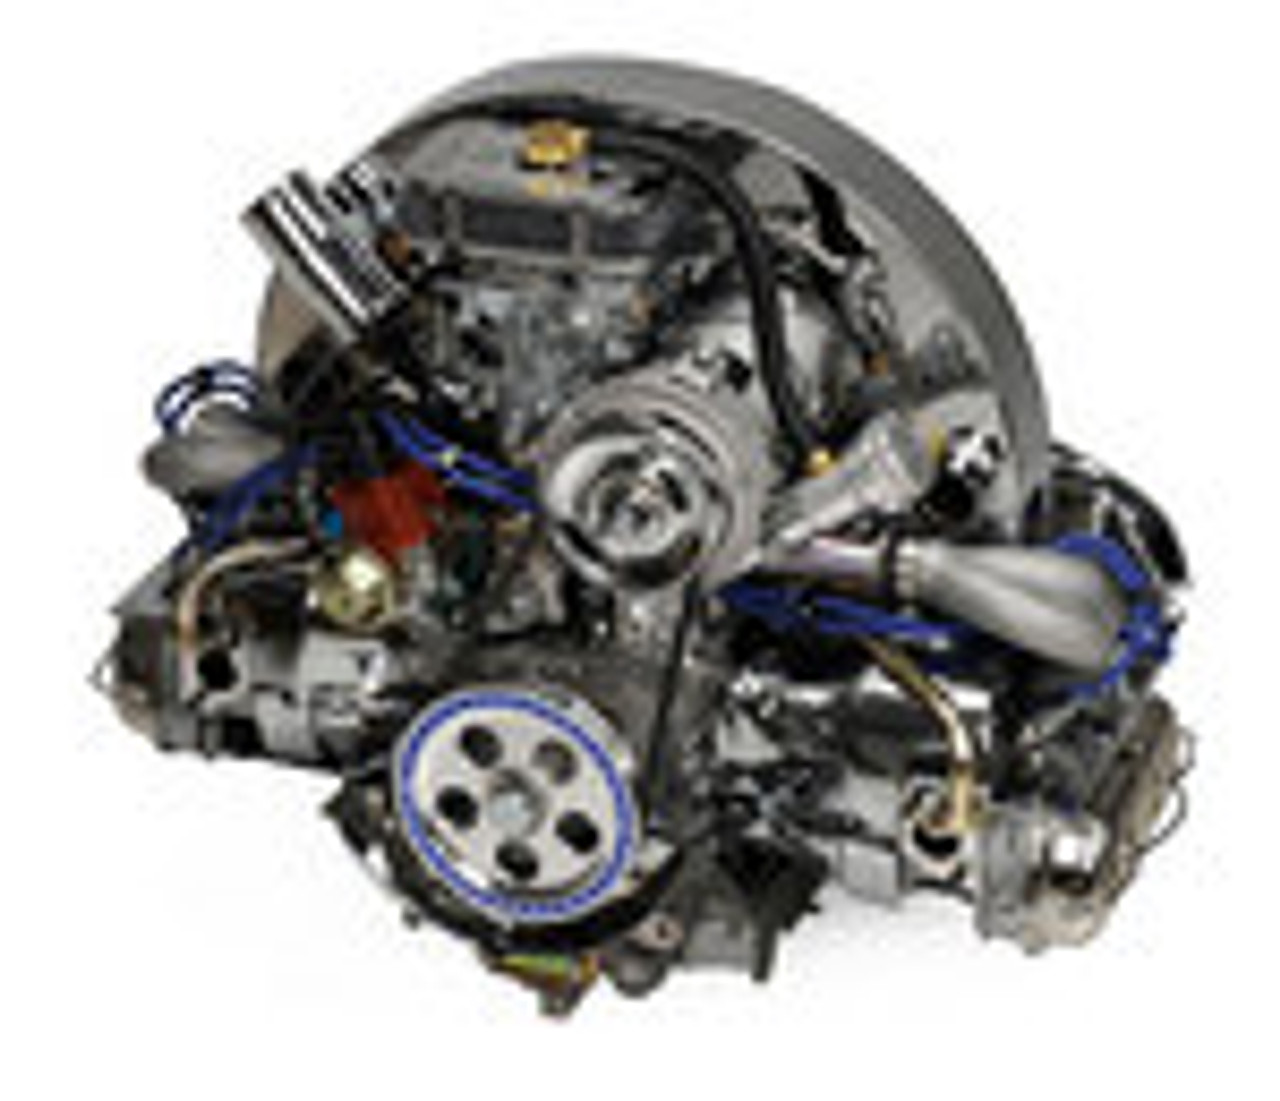 1641cc Turnkey Engine, All Brand New Components